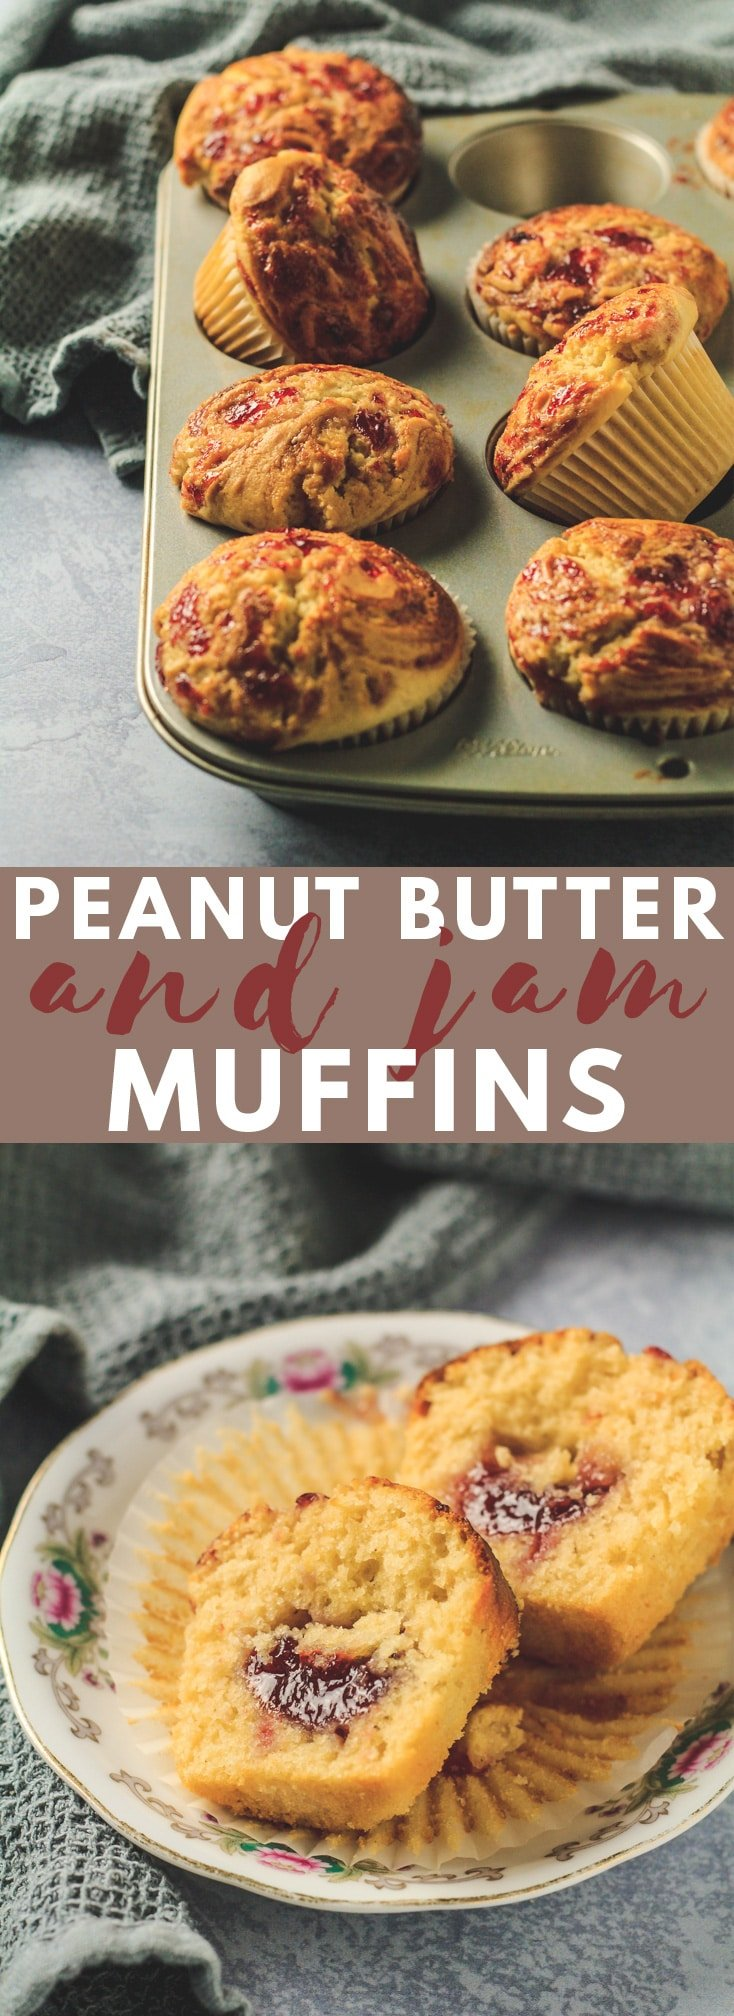 Peanut Butter & Jam Muffins - Deliciously moist and fluffy peanut butter muffins that are loaded with flavour, and filled and swirled with strawberry jam! #peanutbutter #muffinrecipes